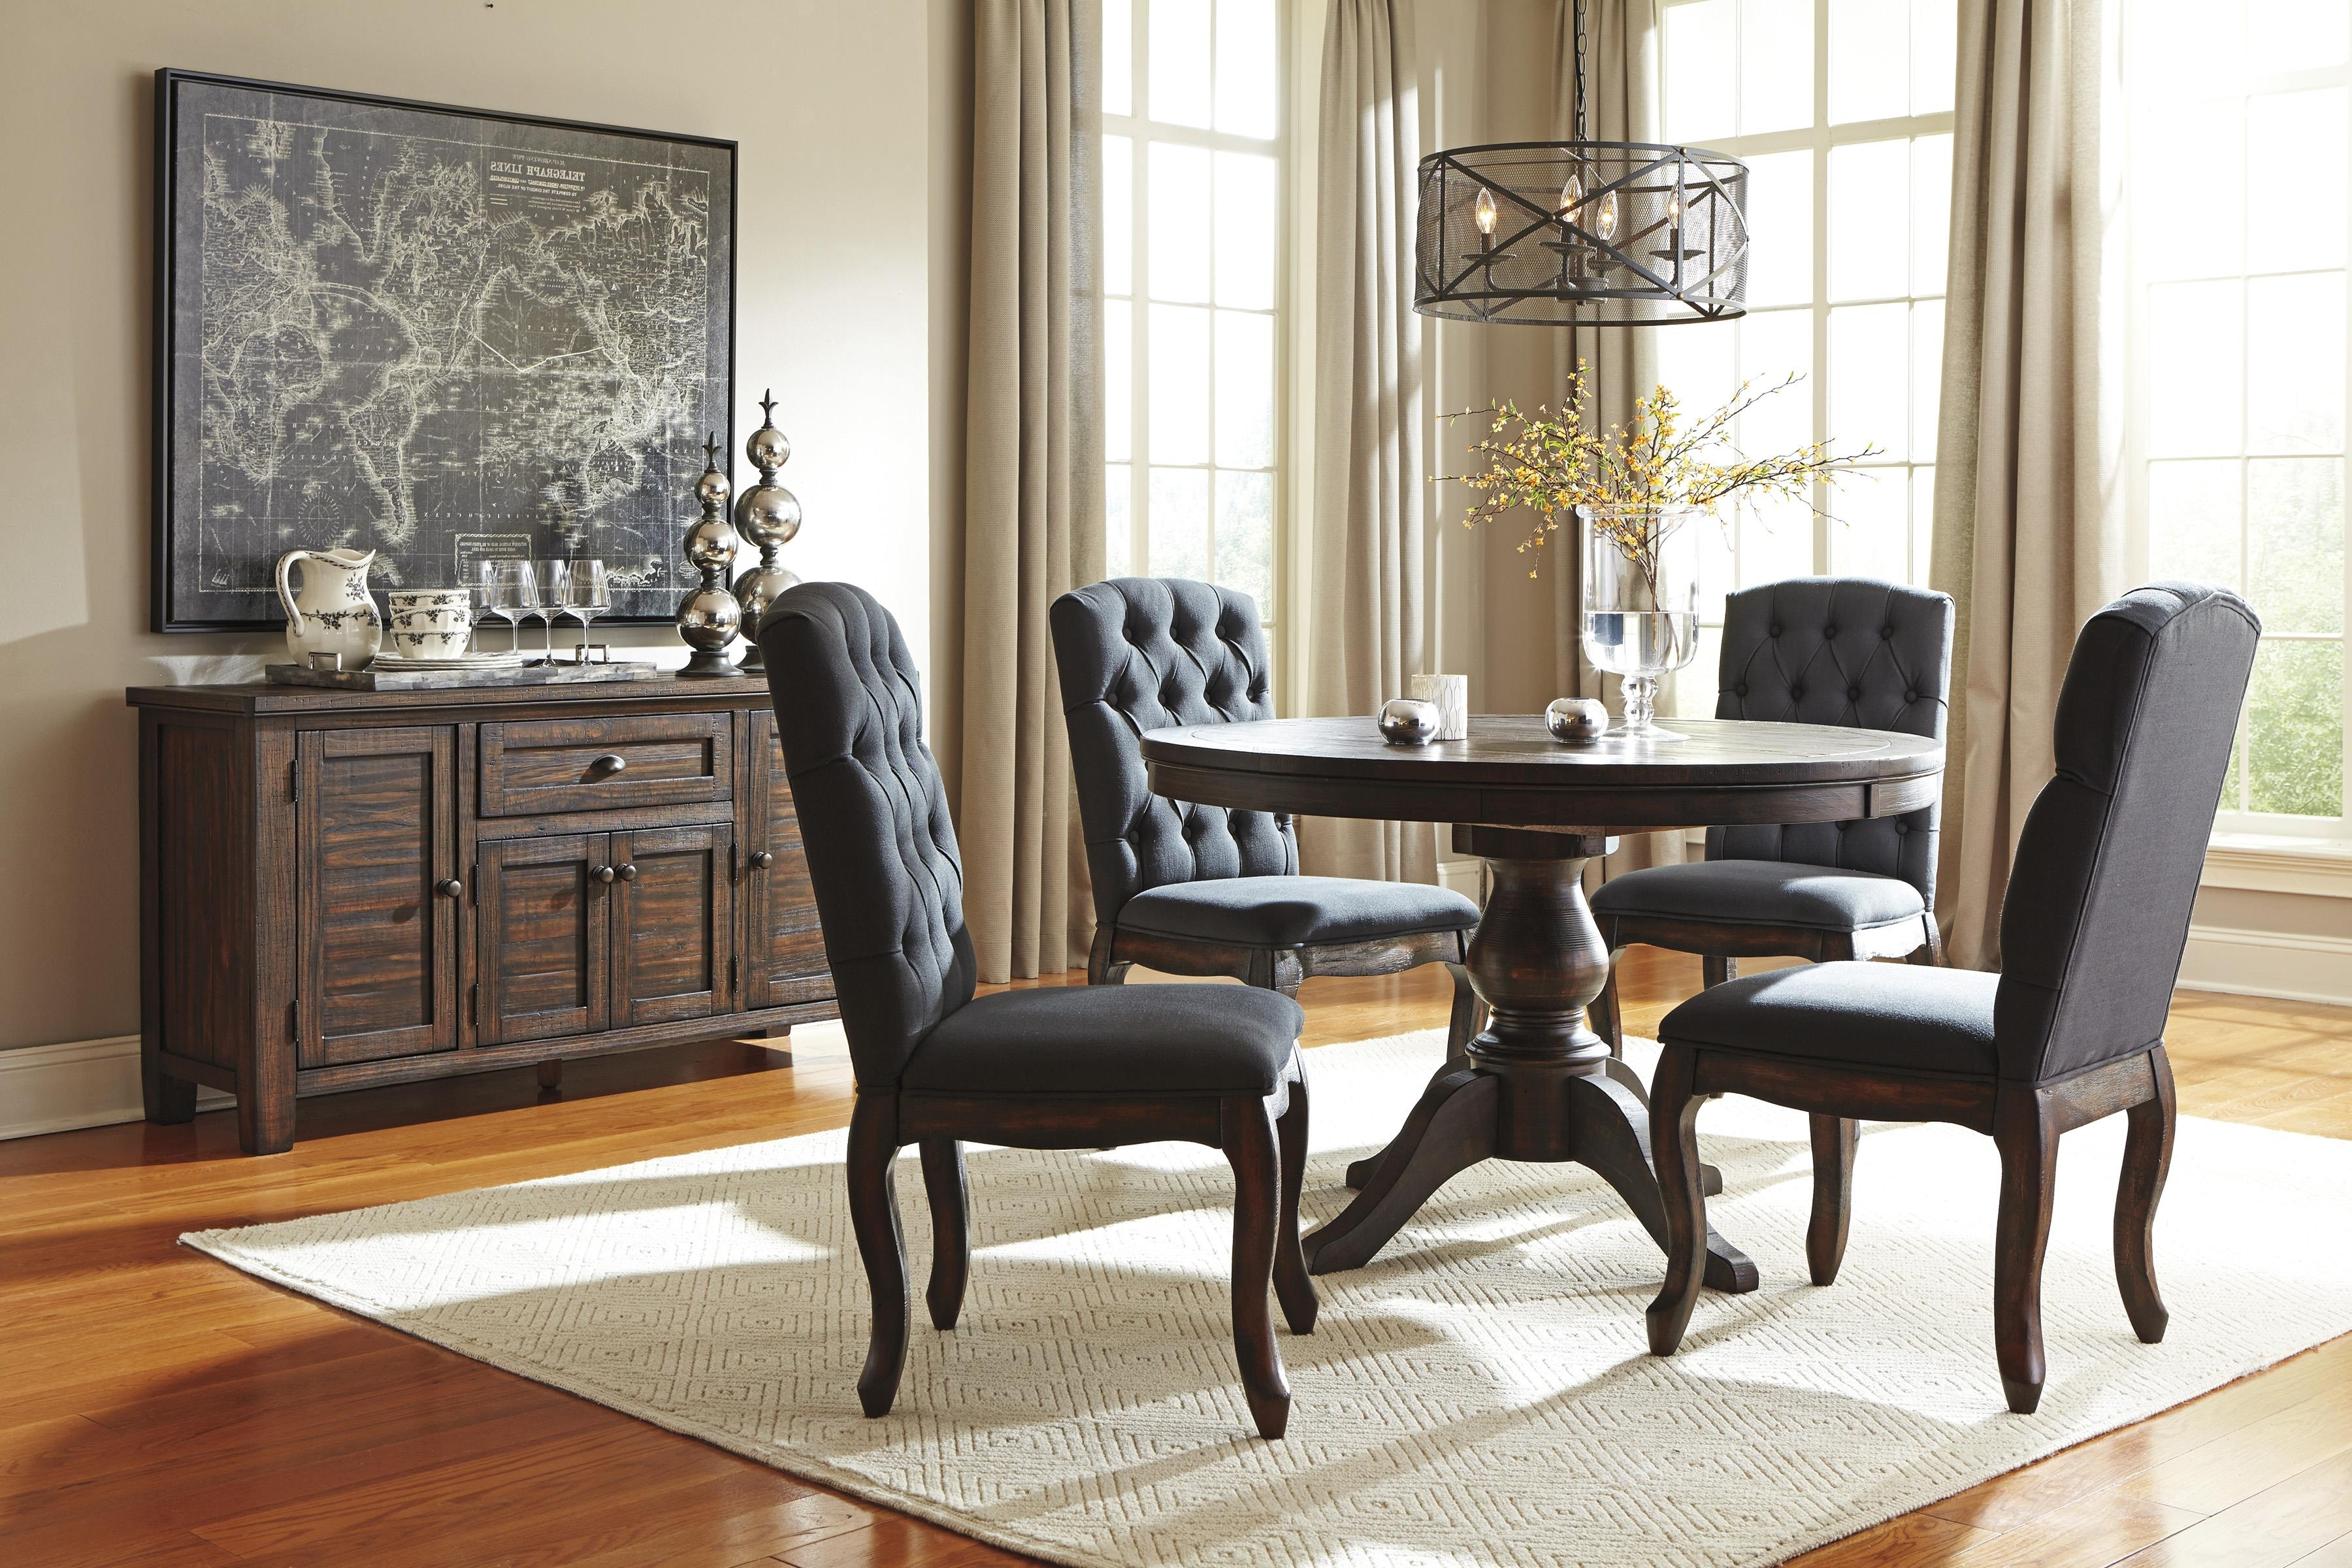 Jaxon 5 Piece Extension Round Dining Sets With Wood Chairs For Fashionable Signature Designashley Trudell Round Dining Room Pedestal (View 12 of 25)